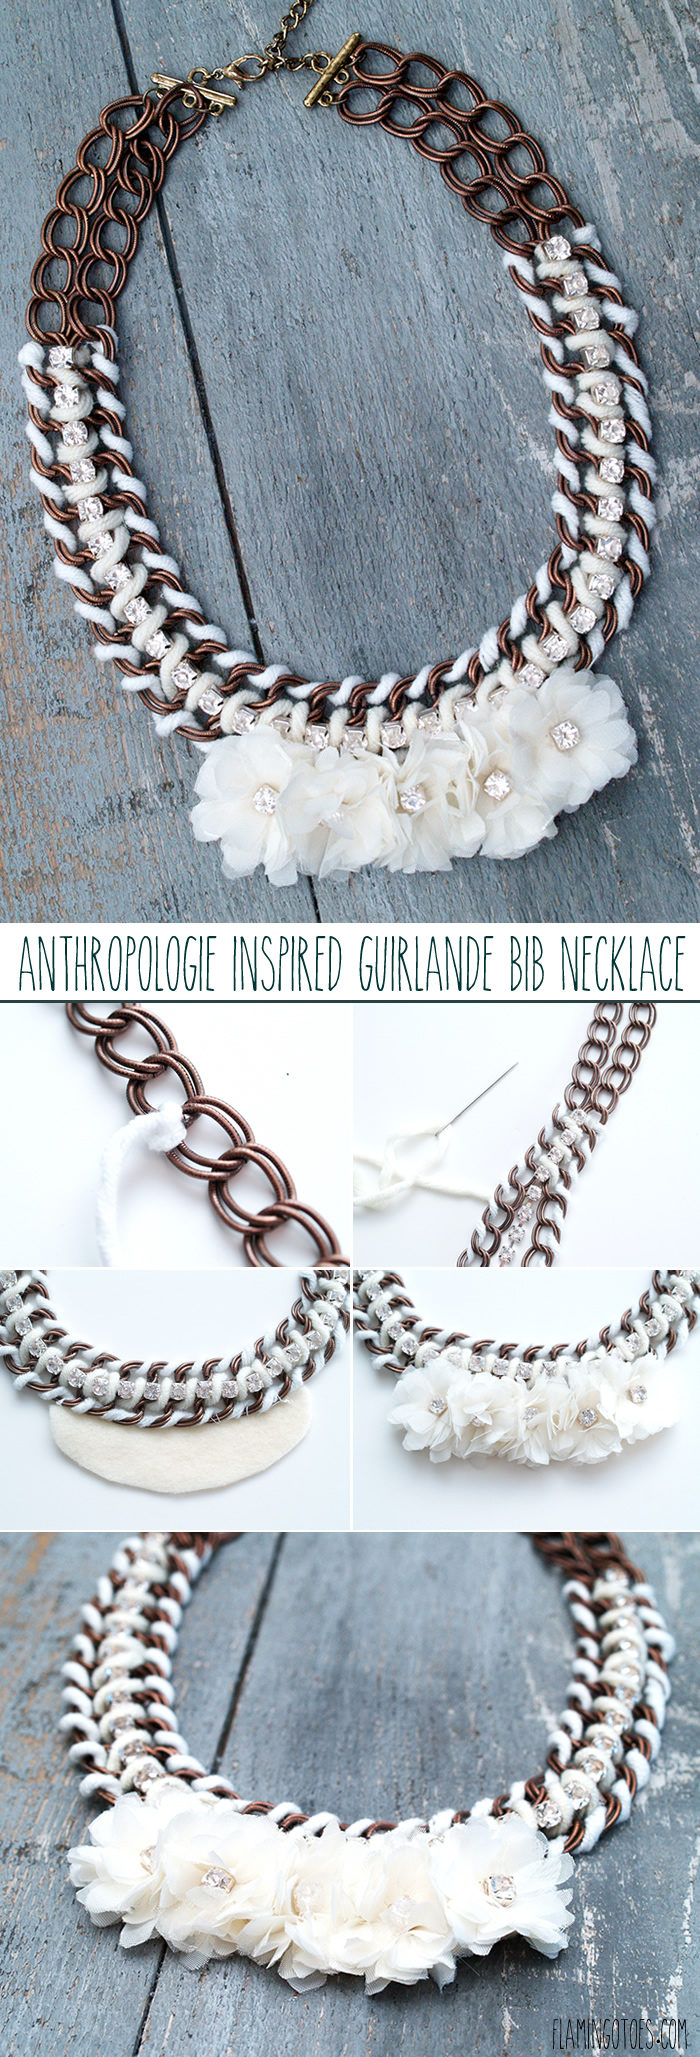 Anthro Inspired Guirlande Bib Necklace